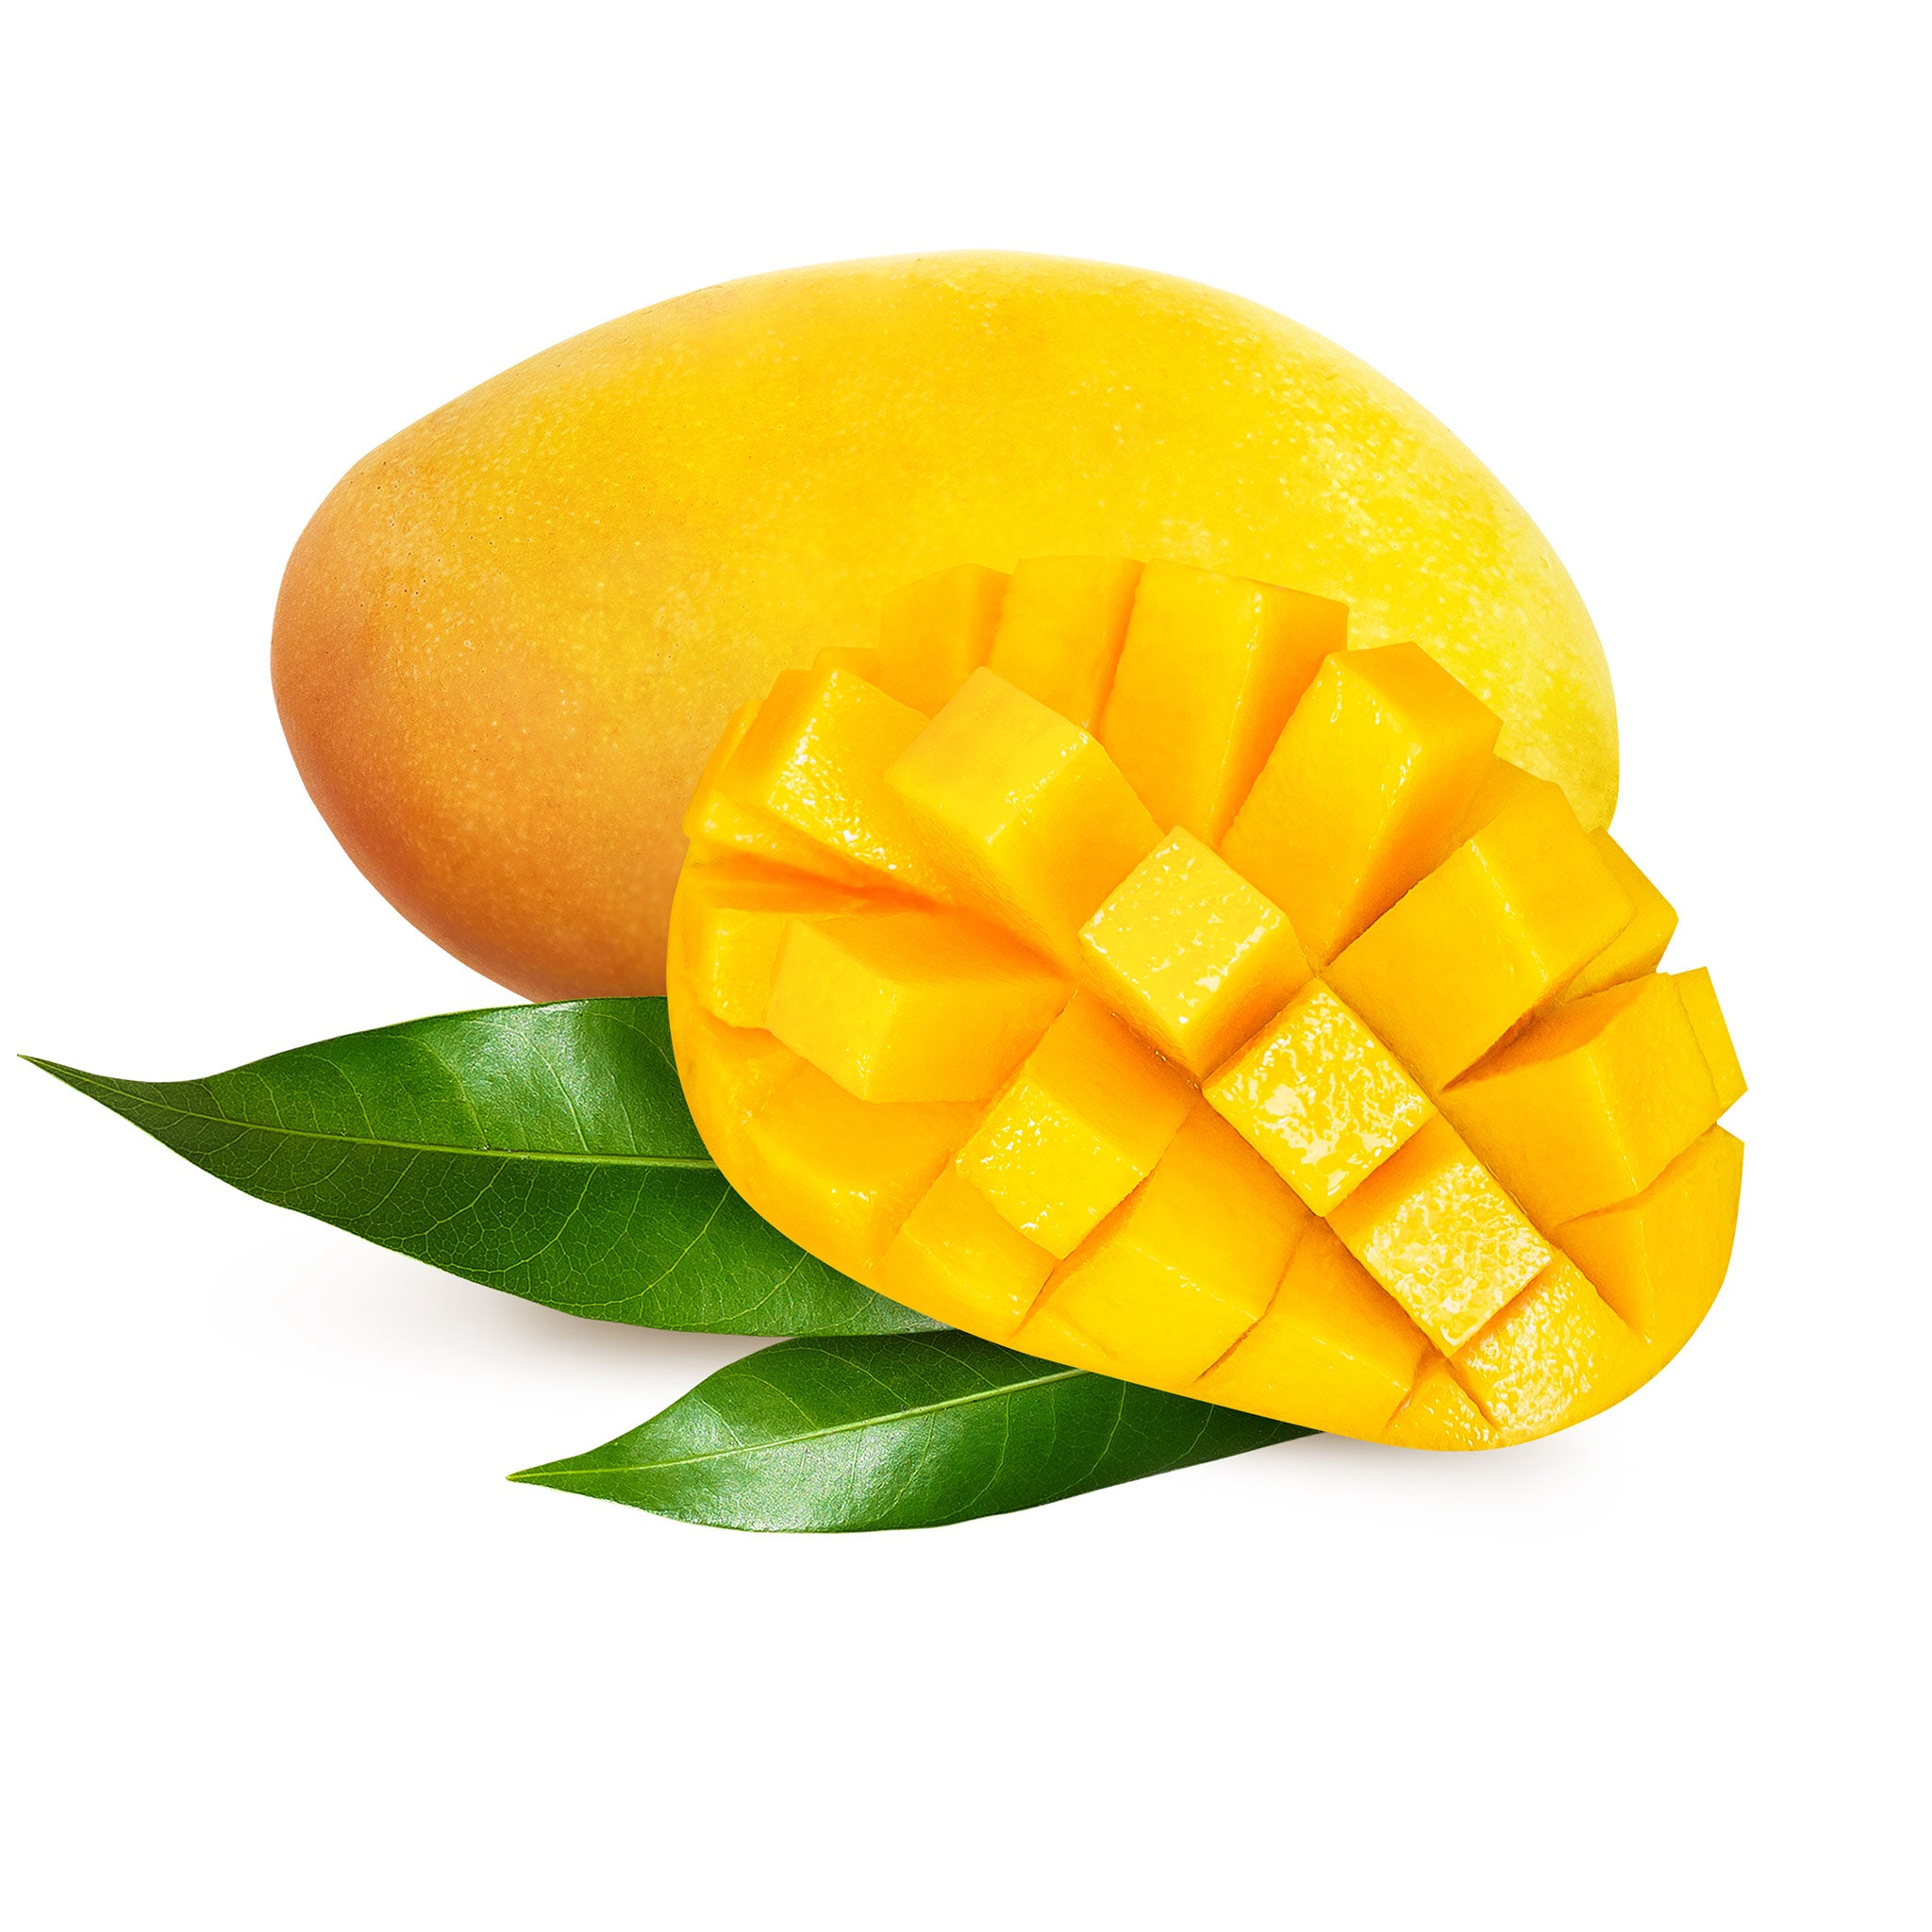 Thai yellow mango